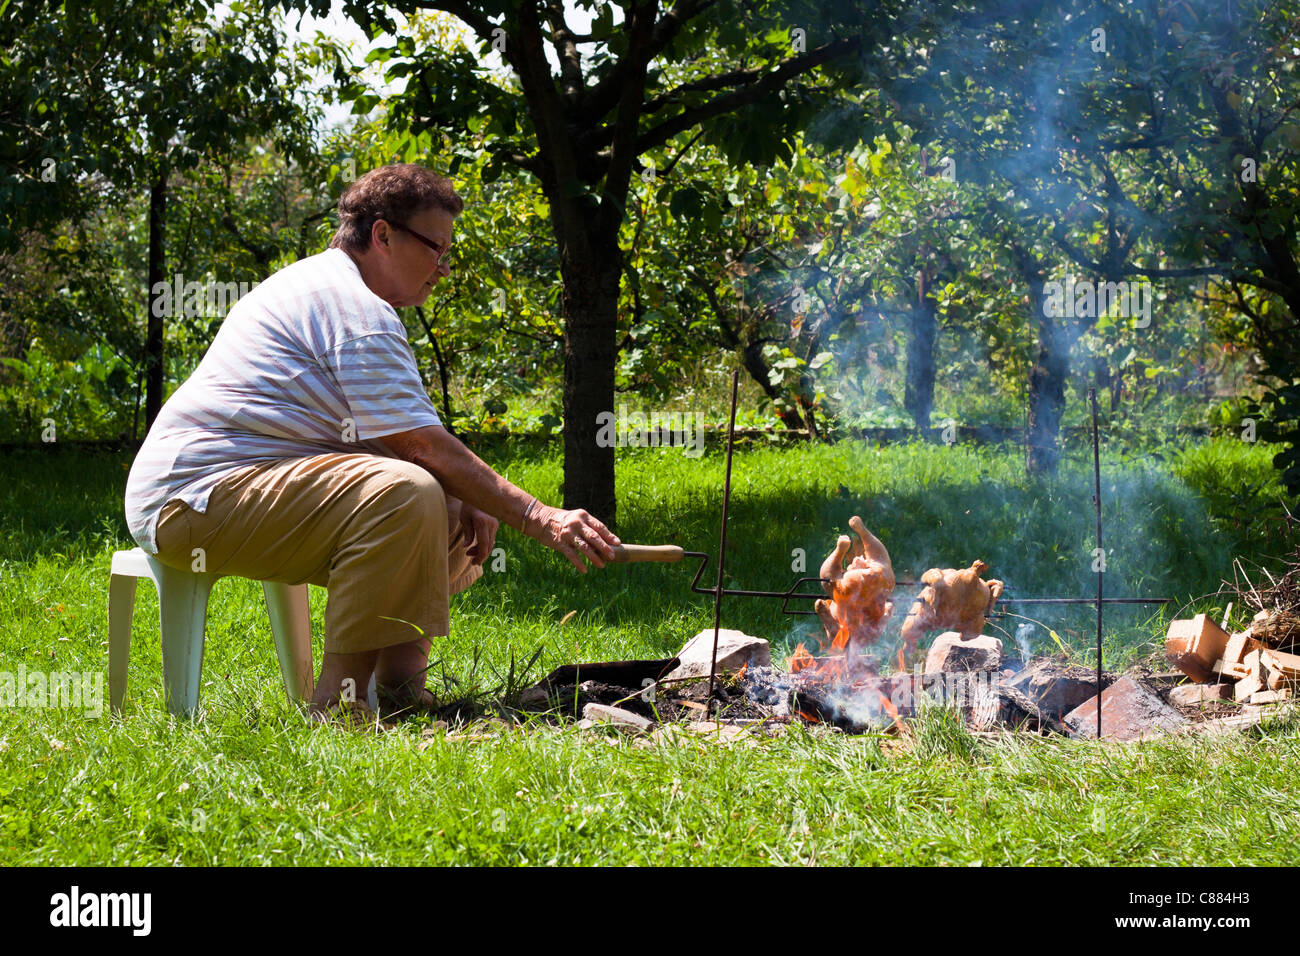 Senior woman grilling chickens on bonfire. - Stock Image